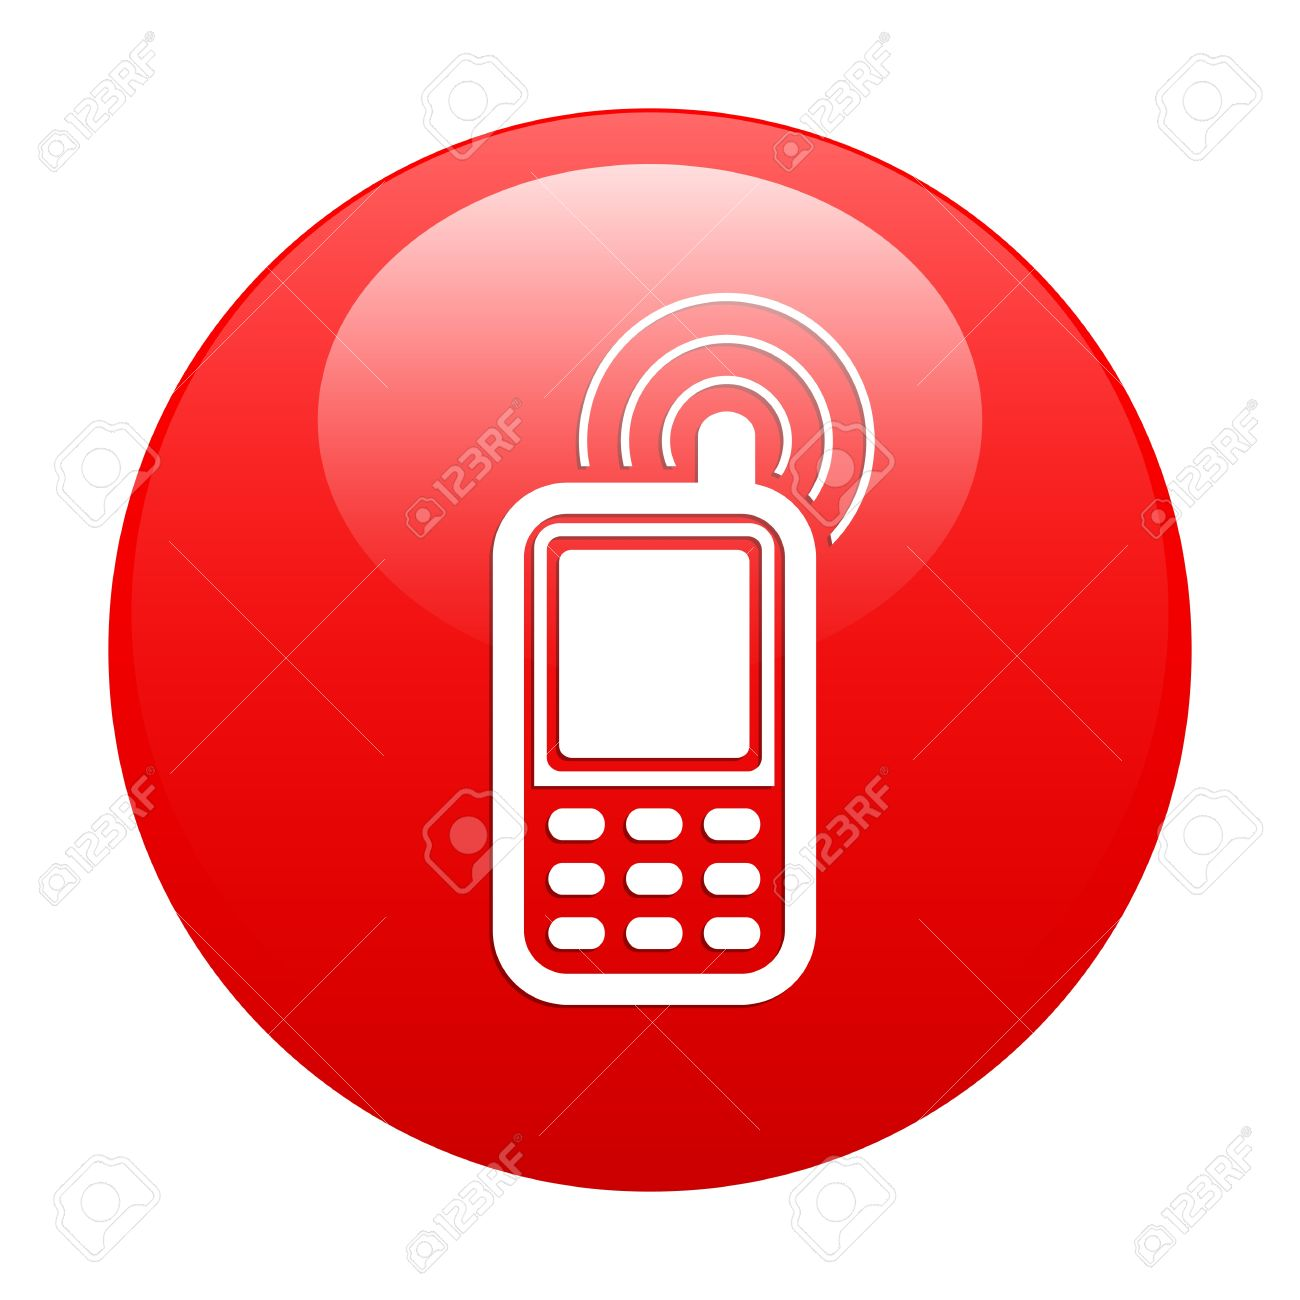 Button Cell Phone Icon Red Royalty Free Cliparts, Vetores, E IlustraçõesStock. Image 21635098.